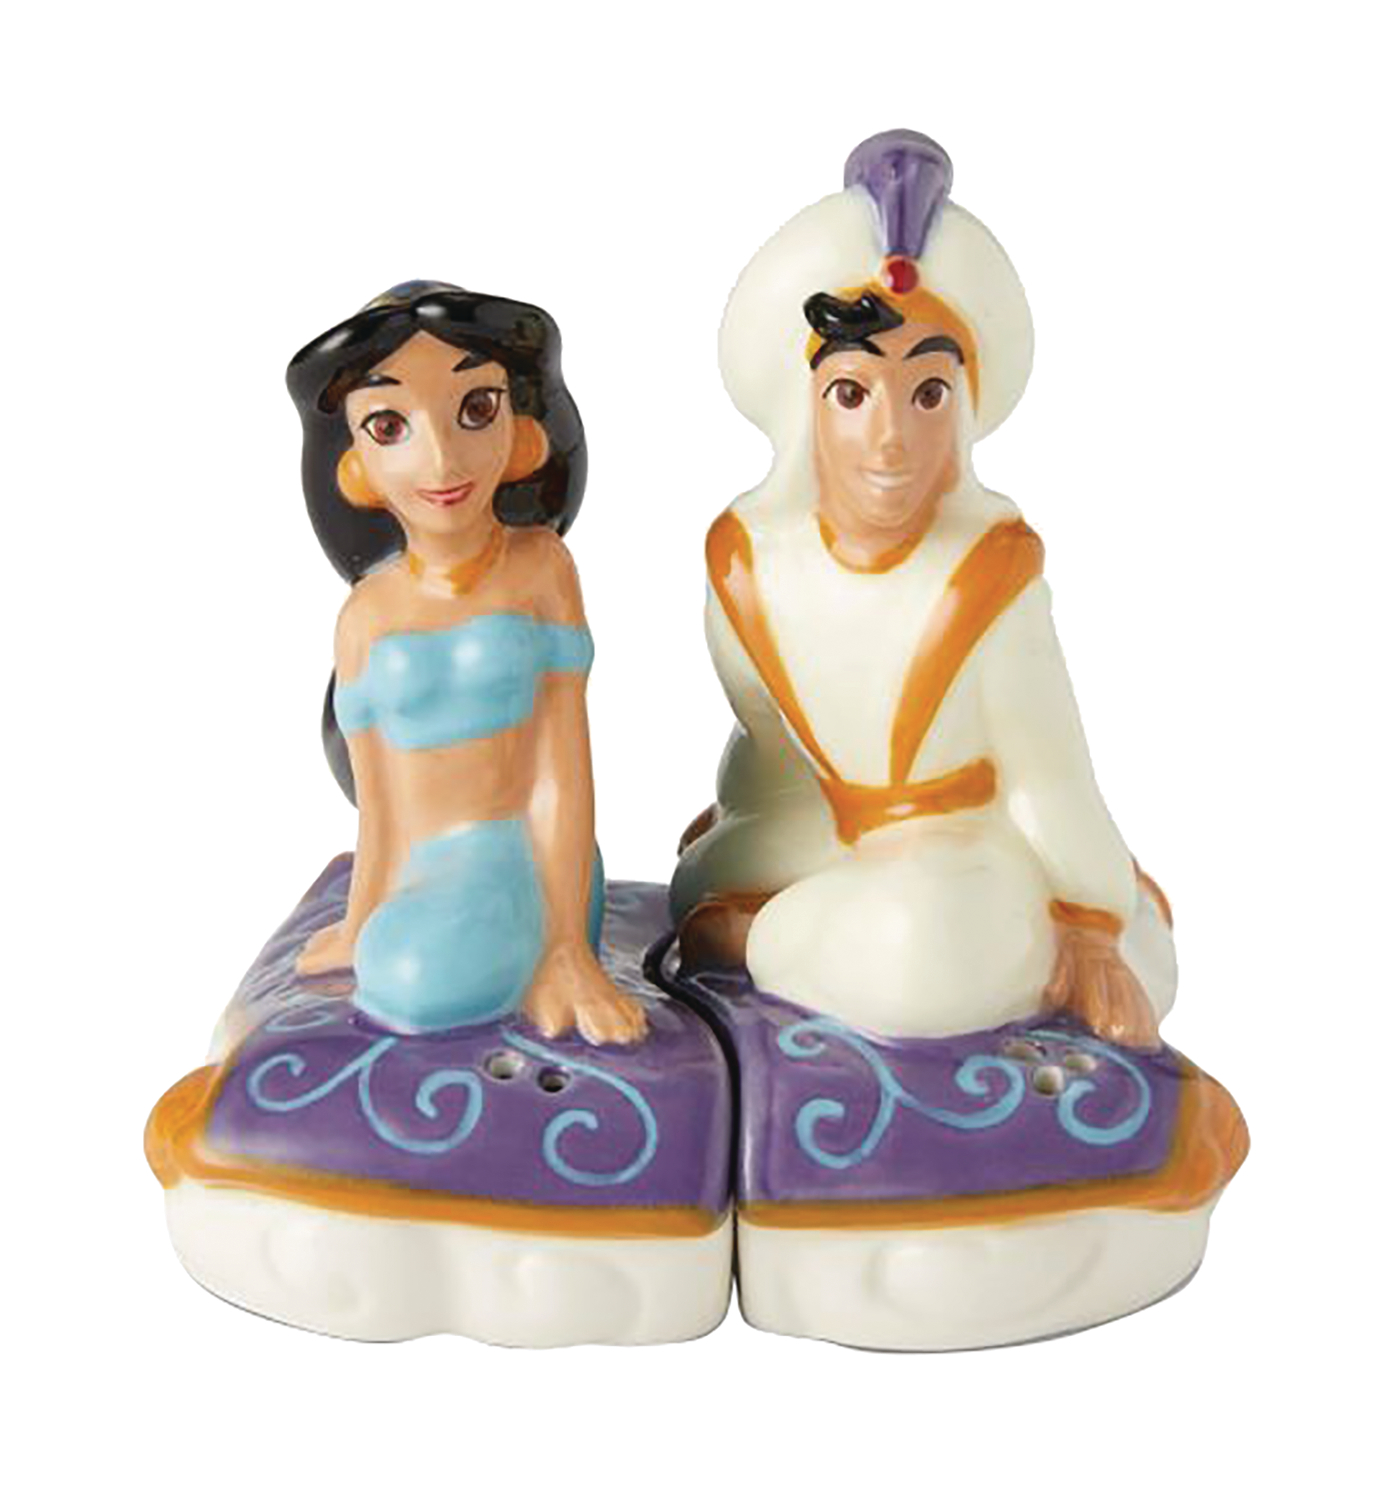 DISNEY ALADDIN & JASMINE SALT AND PEPPER SHAKERS